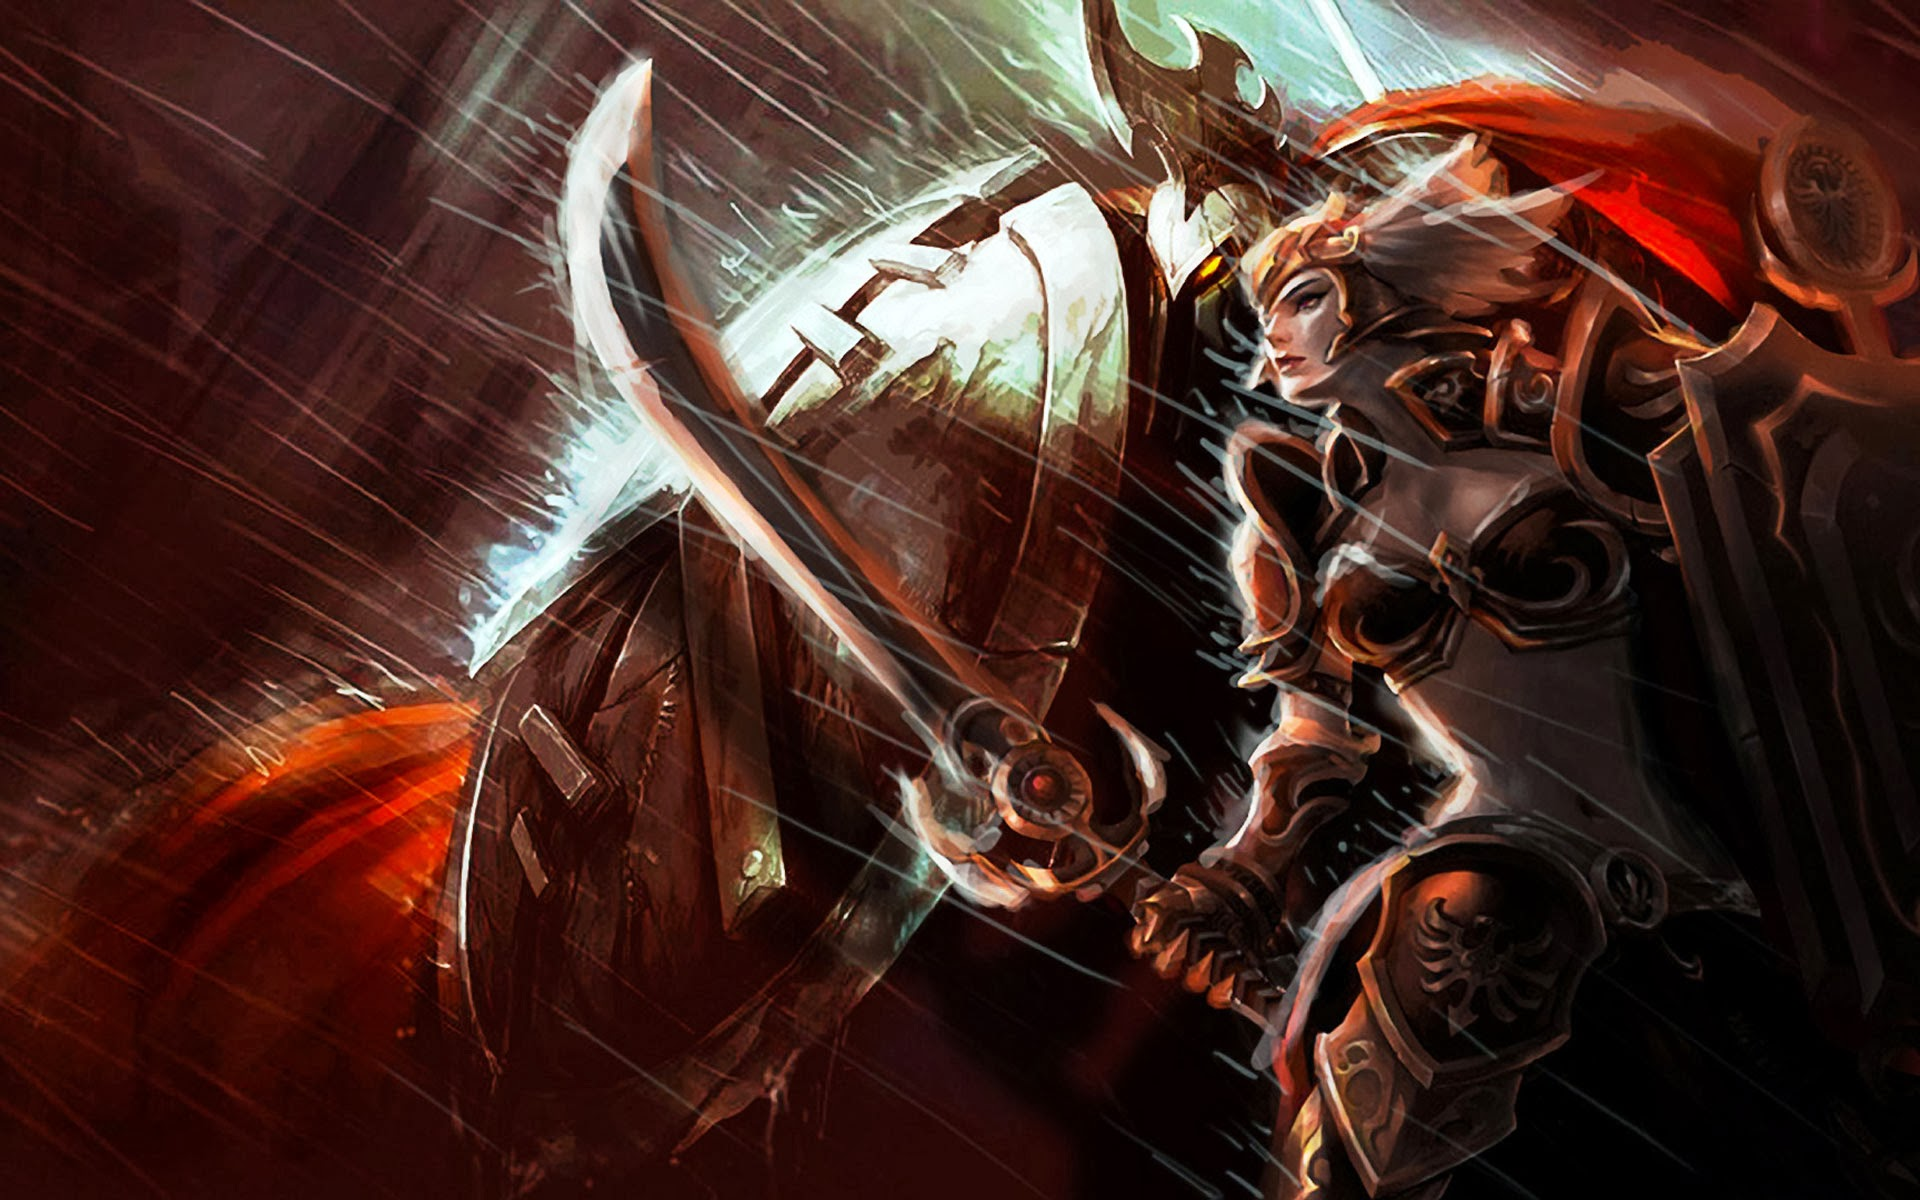 Download Pantheon Leona Skin Splash League Of Legends Hd Wallpaper